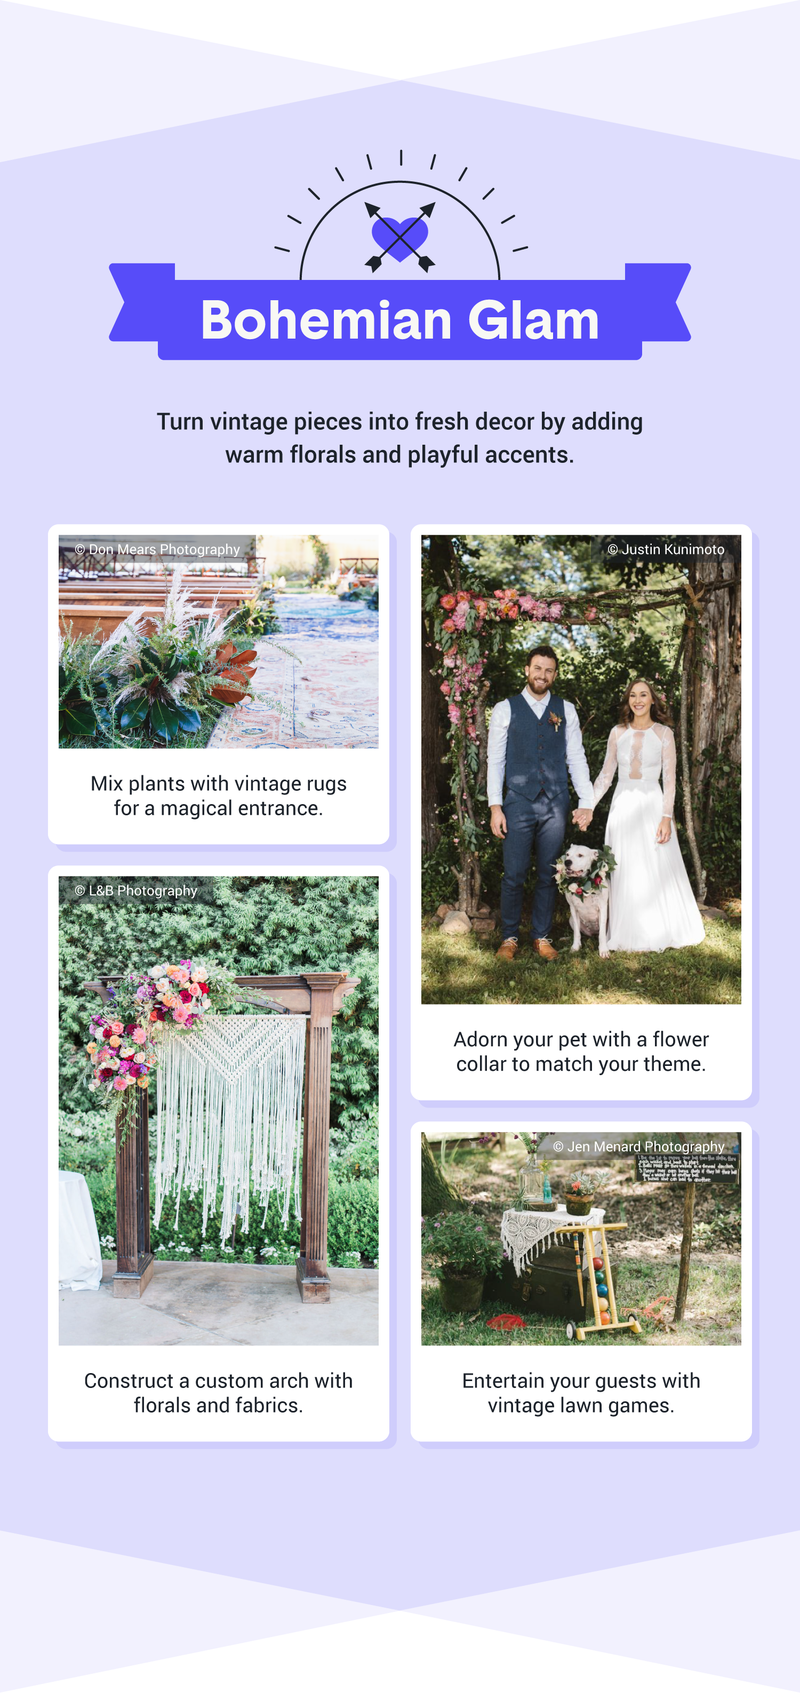 backyard-wedding-bohemian-glam-light-purple.png